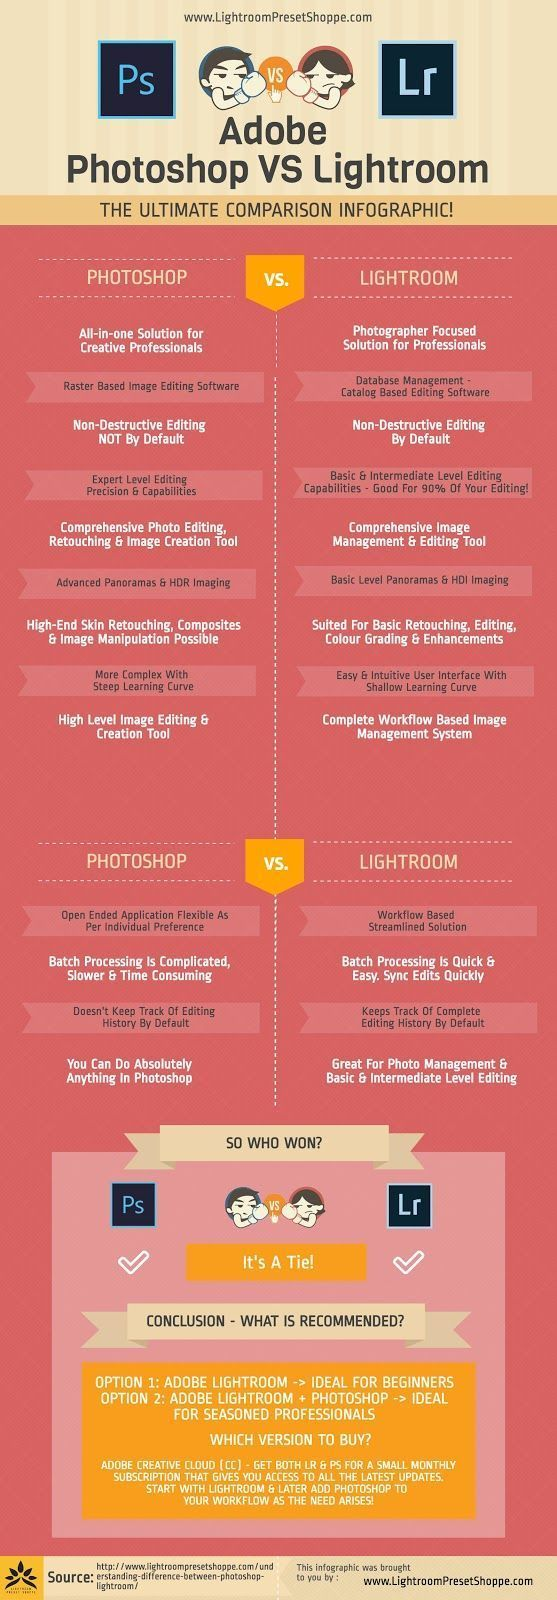 Adobe Photoshop Elements Vs Lightroom CC (Which is Best?)